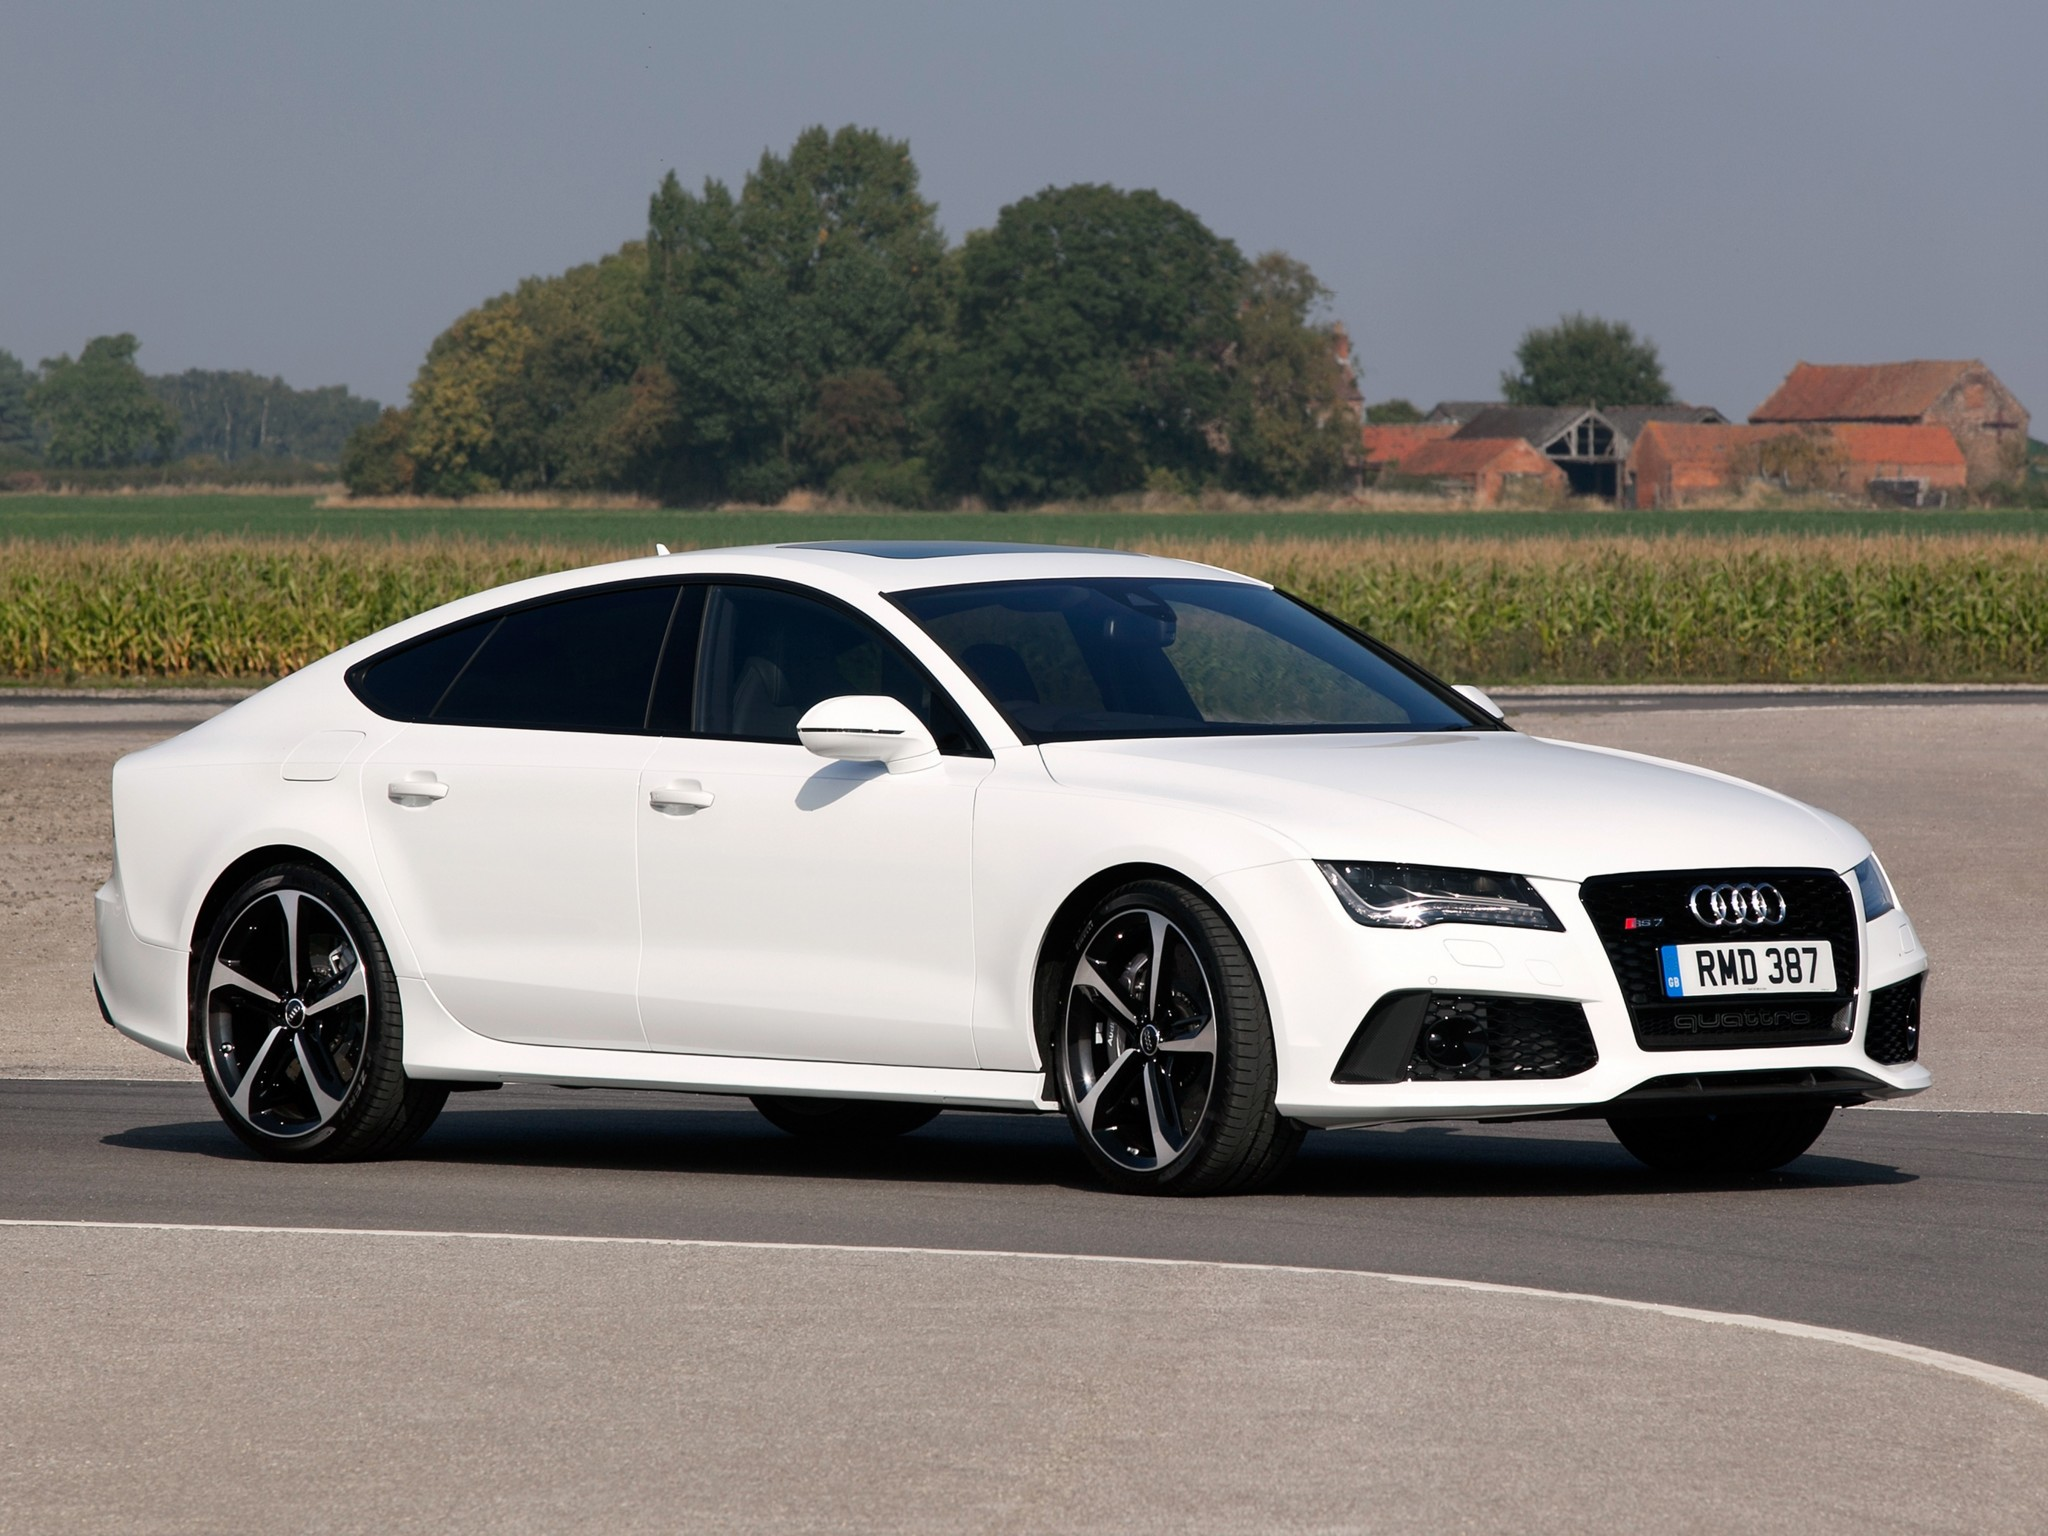 2013 Audi Rs7 Sportback Uk Spec Wallpaper 2048x1536